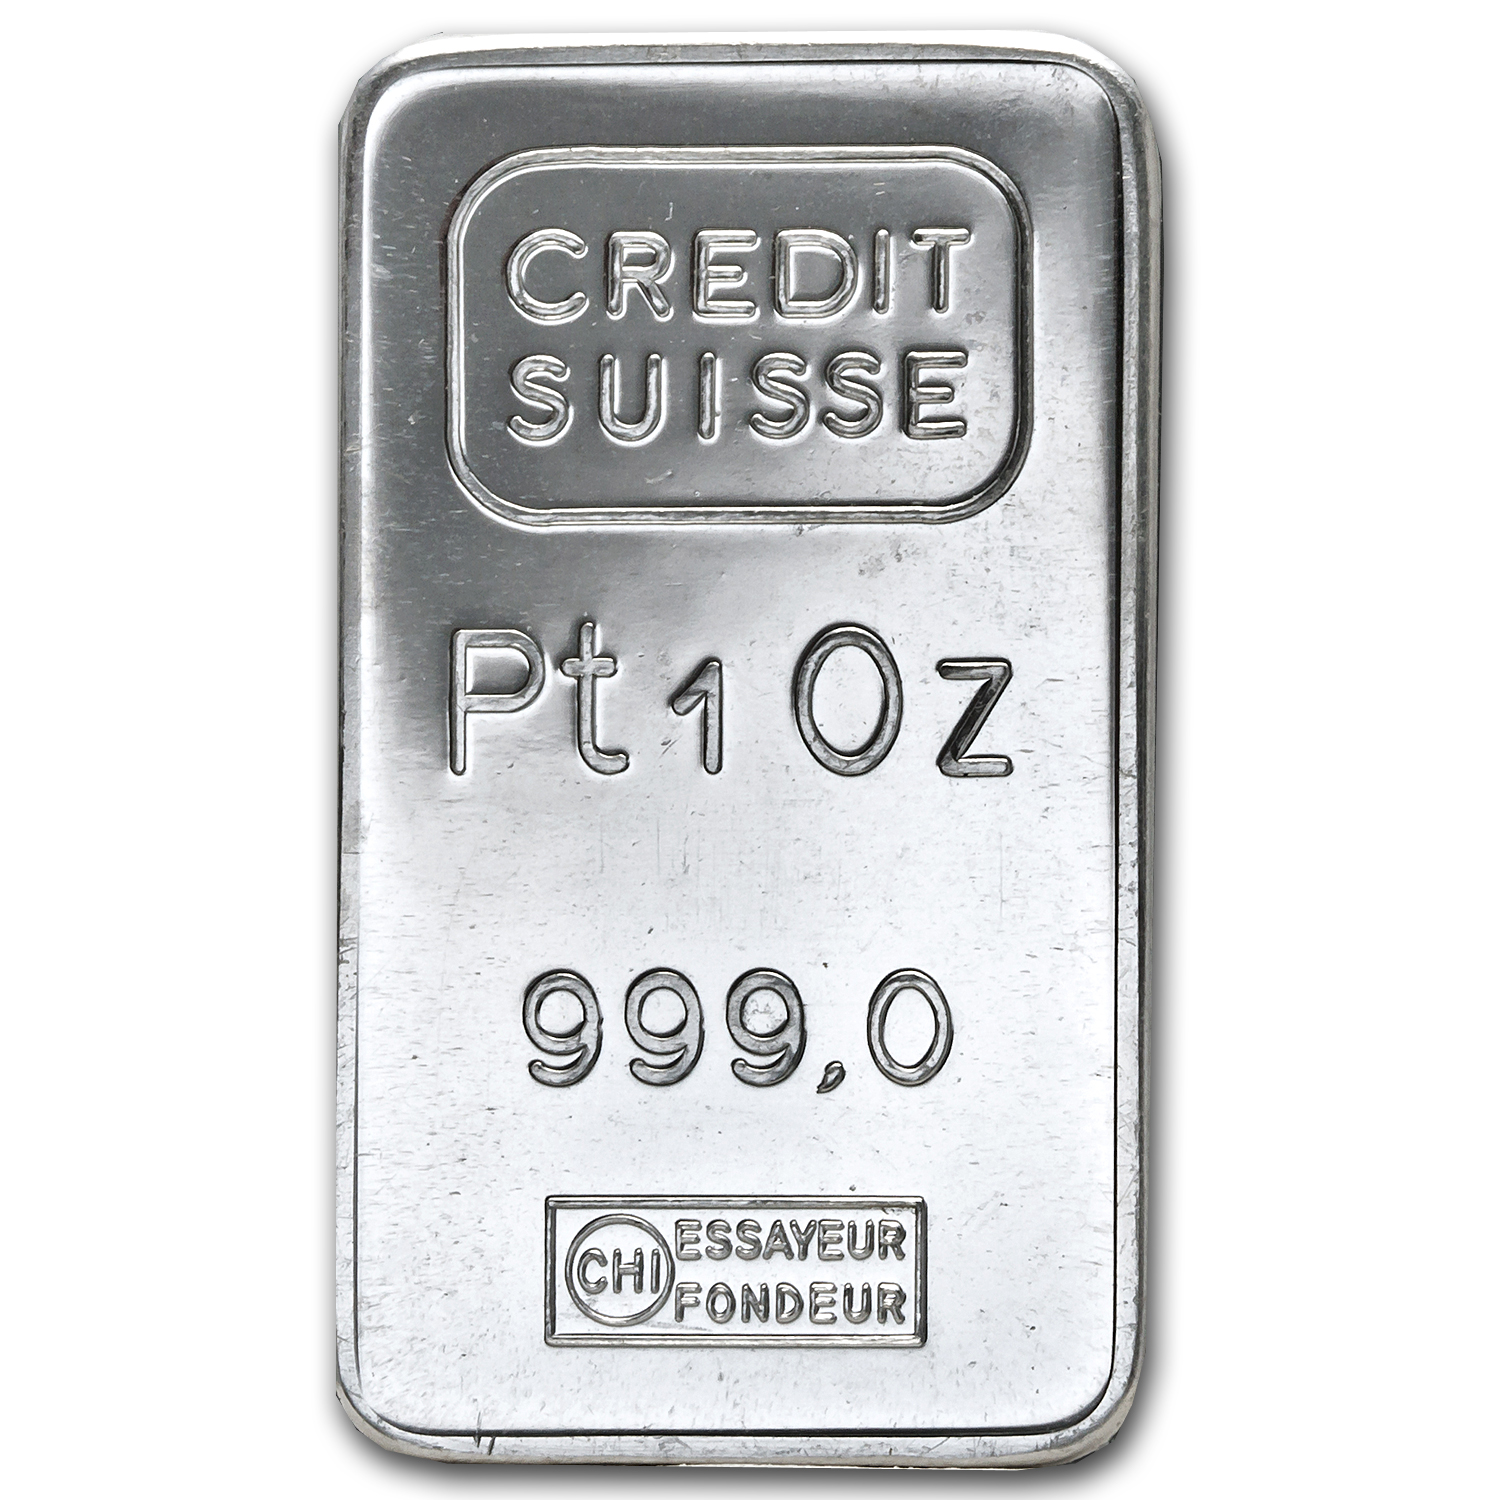 1 oz Credit Suisse Platinum Bar (Vintage) .999 Fine